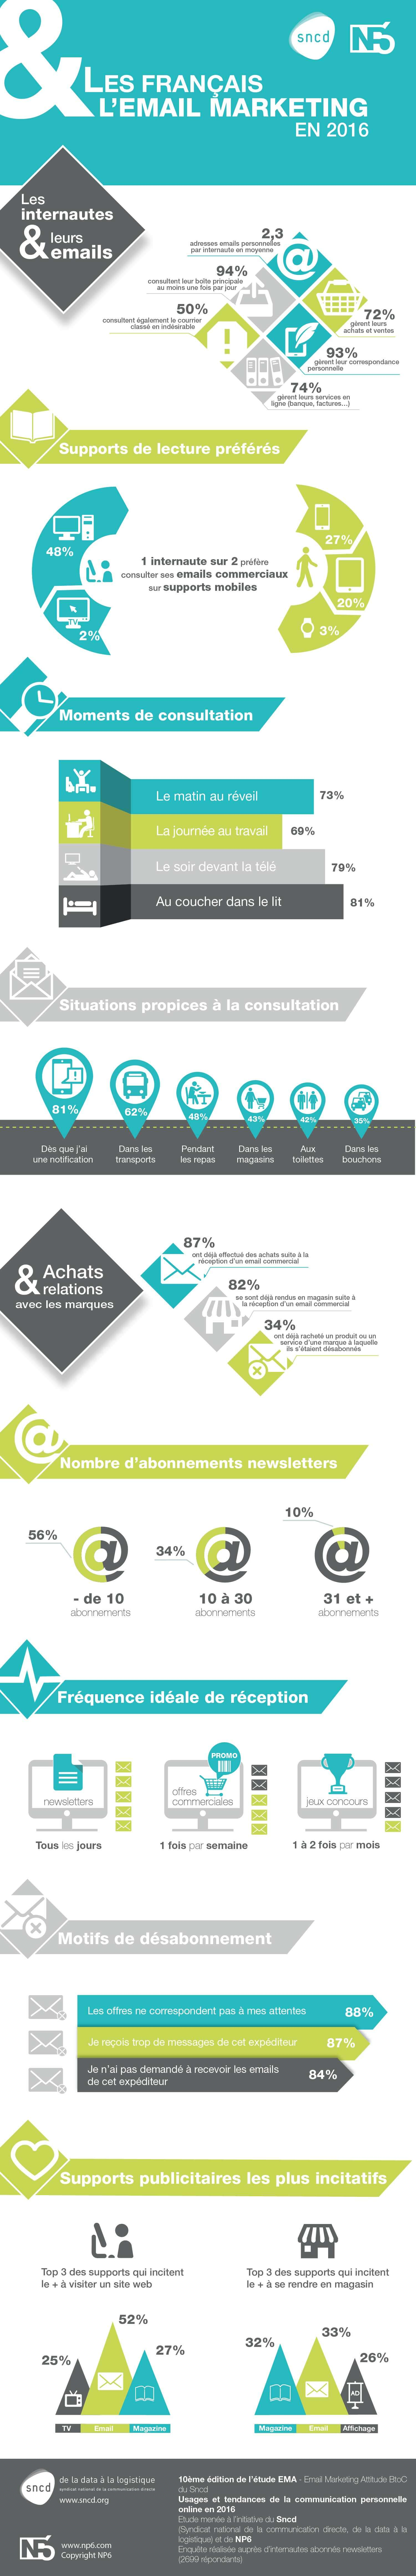 Infographie Emailing NP6 SNCD